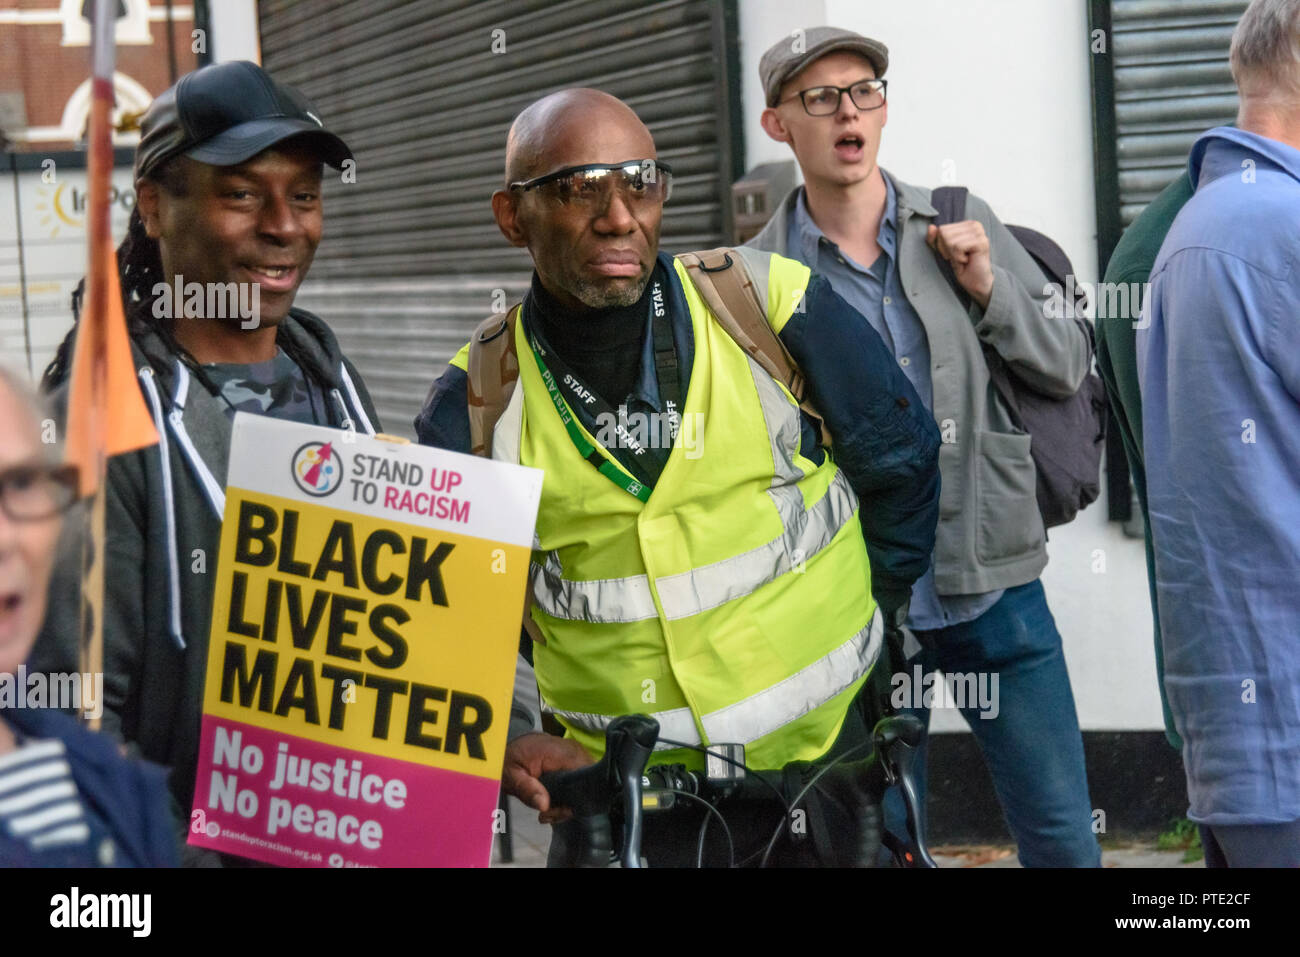 London, UK. October 9th 2018. People at the  rally outside the New Atlas Cafe Restaurant where a young black man was attacked by police who used obviously unnecessary force when arresting him on suspicion of having been involved in a knife attack. He was assaulted by six officers, and was viciously kicked while officers struggled to handcuff him, andwhen he was well under control and held on the ground he was sprayed in the face with CS gas. Credit: Peter Marshall/Alamy Live News Stock Photo